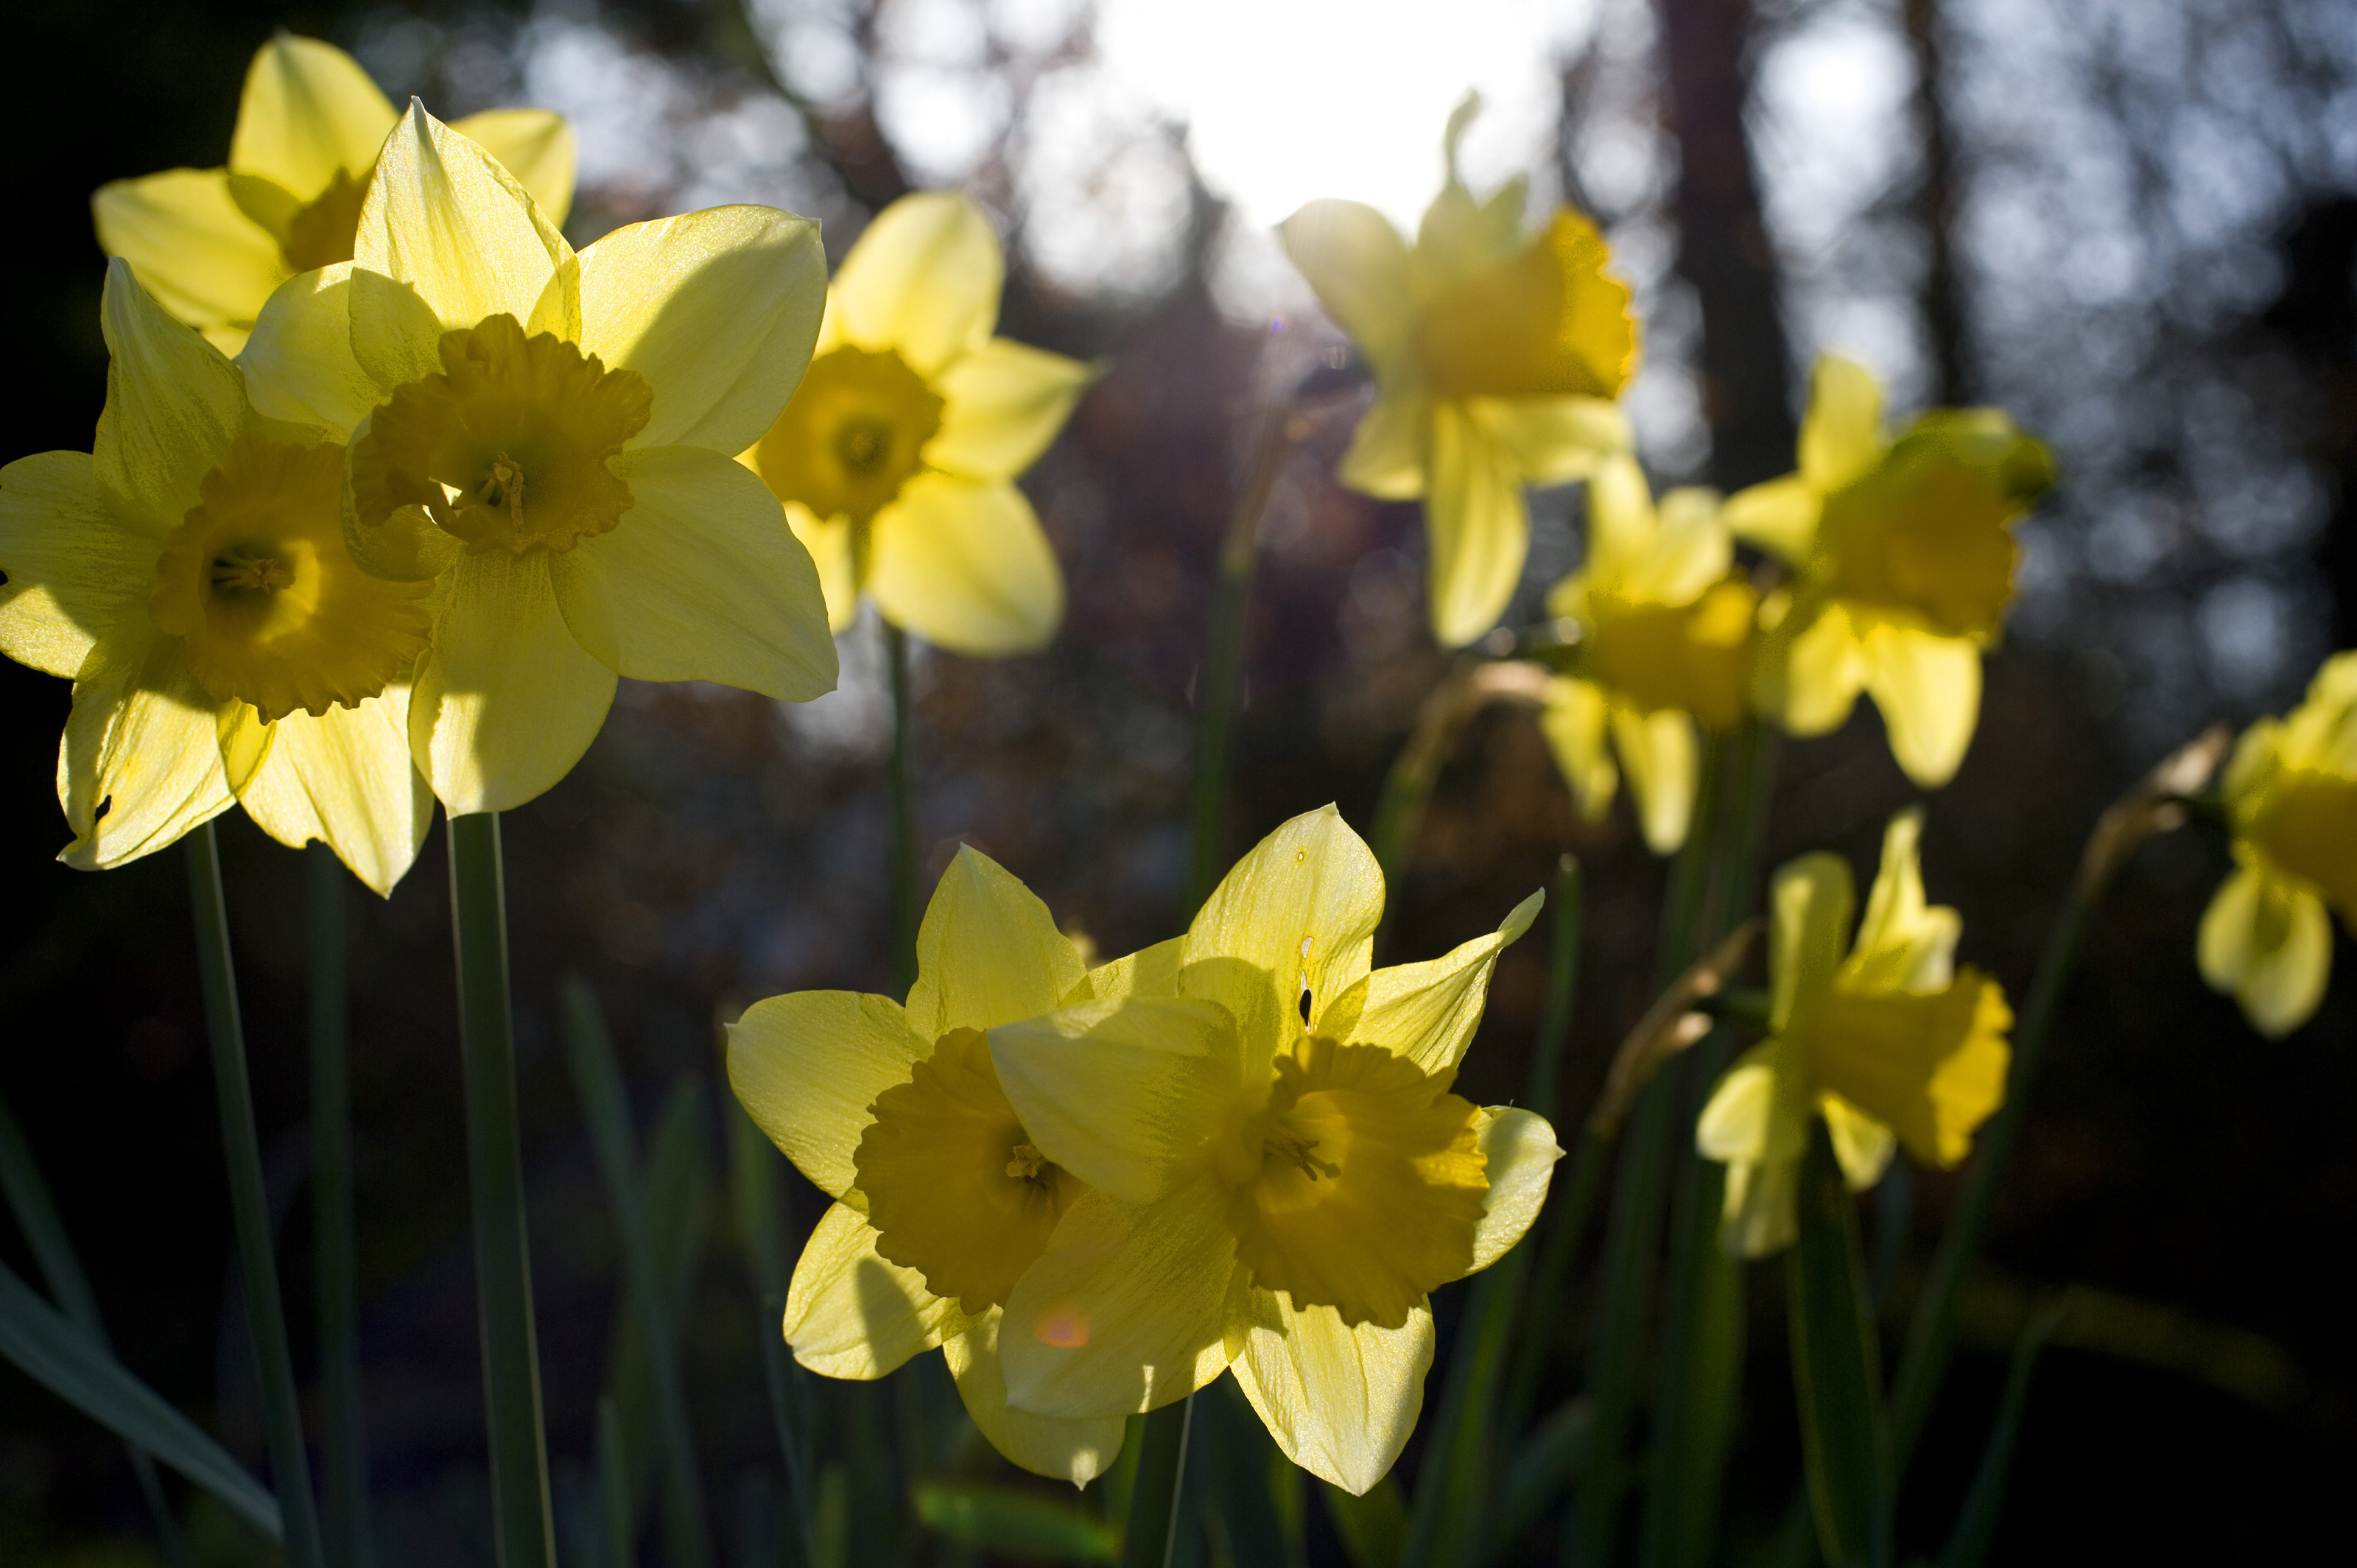 backlit yellow daffodils 4236 stockarch free stock photos